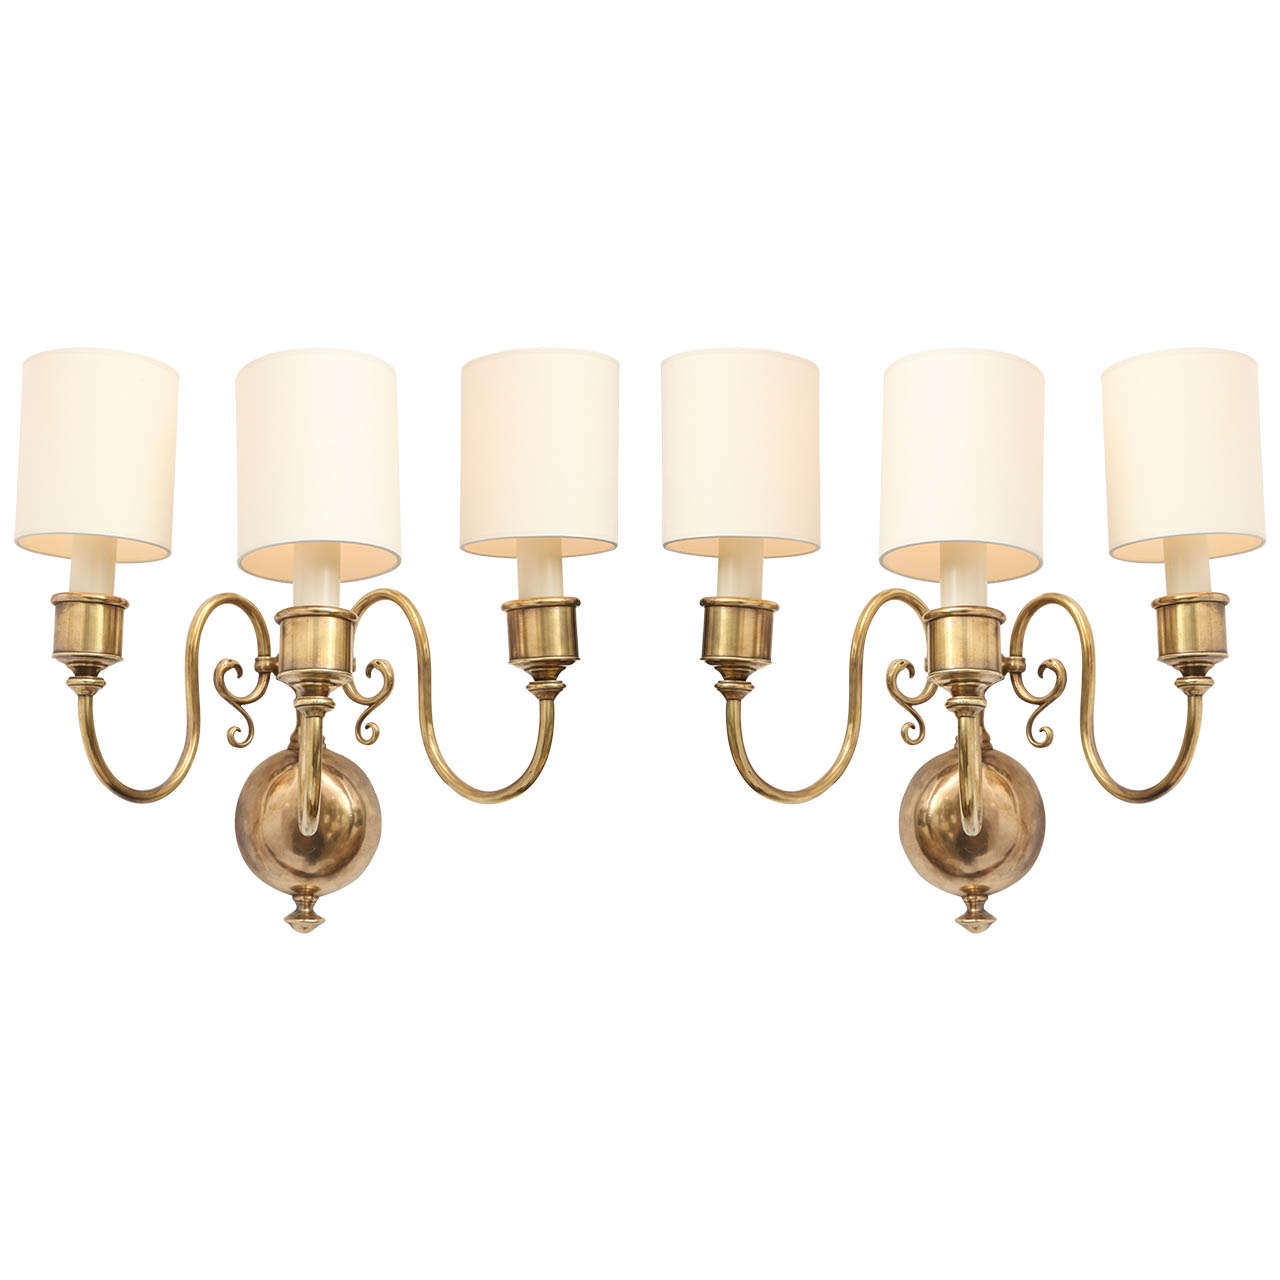 Modern Brass Wall Sconces : A Pair Of 1920 s Classical Modern Brass Wall Sconces at 1stdibs